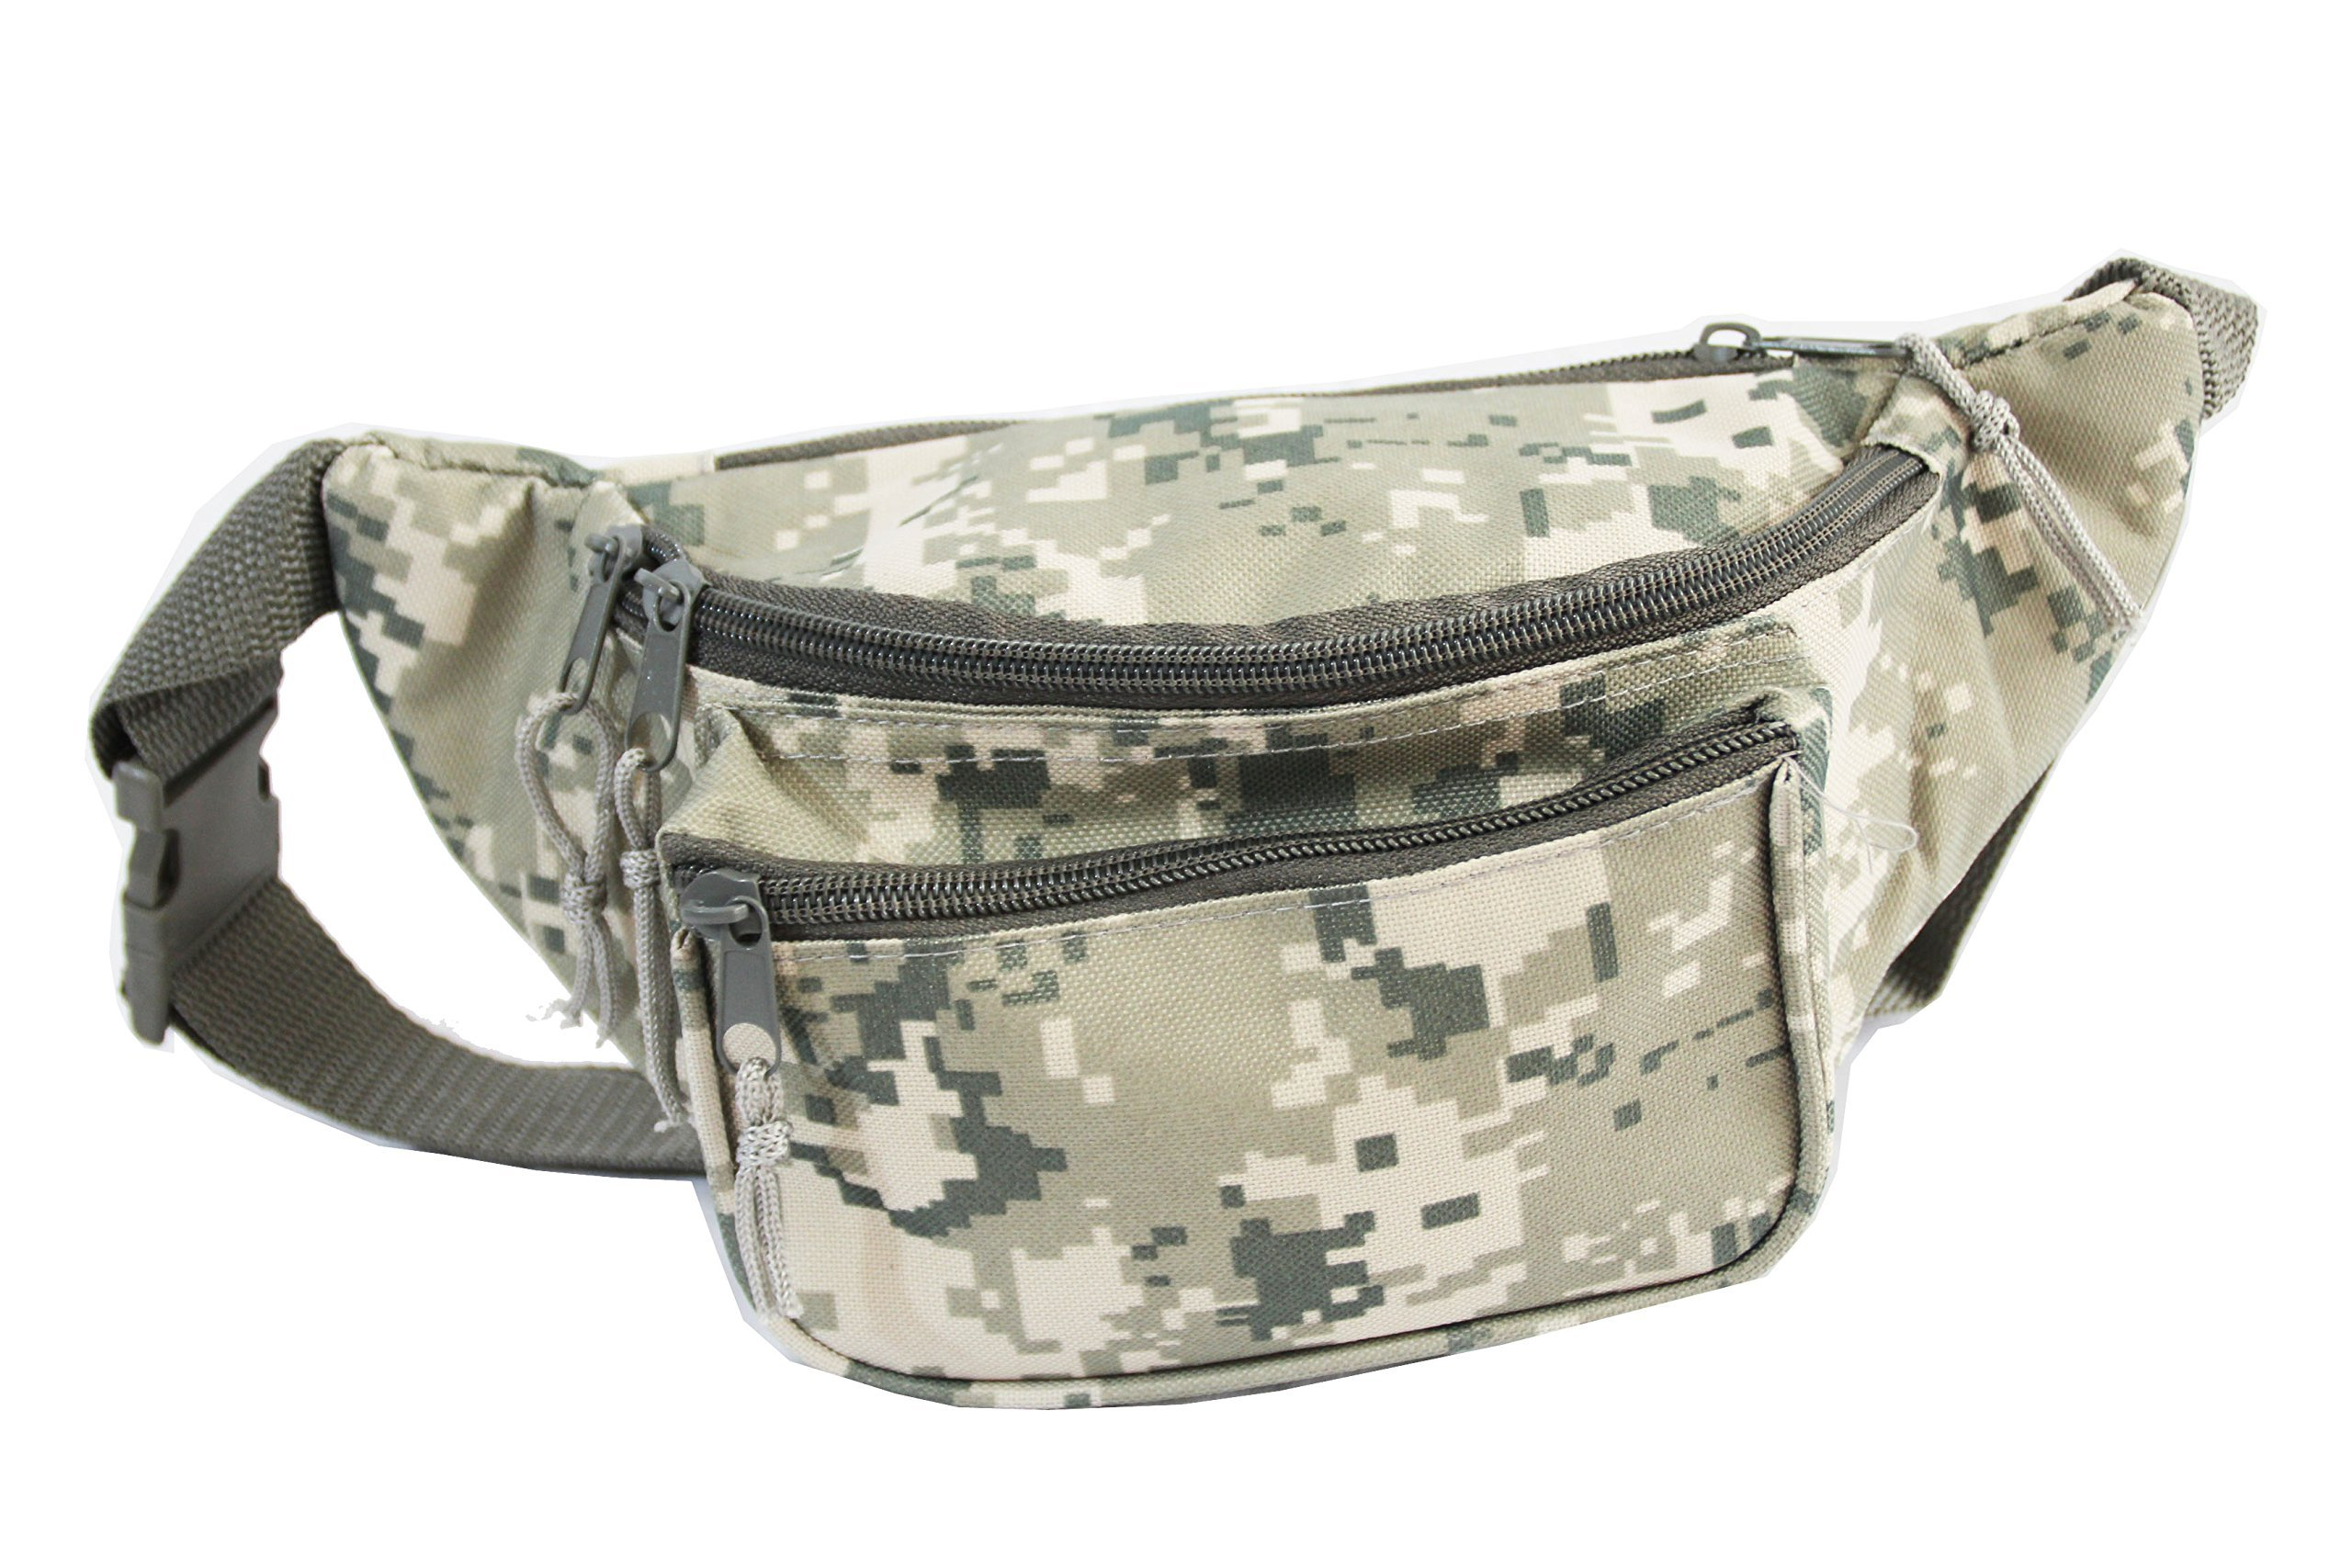 Xtitix Military Tan Digital Camouflage 3 zipper pocket Fanny pack Waist Bag Camo by Xtitix (Image #1)